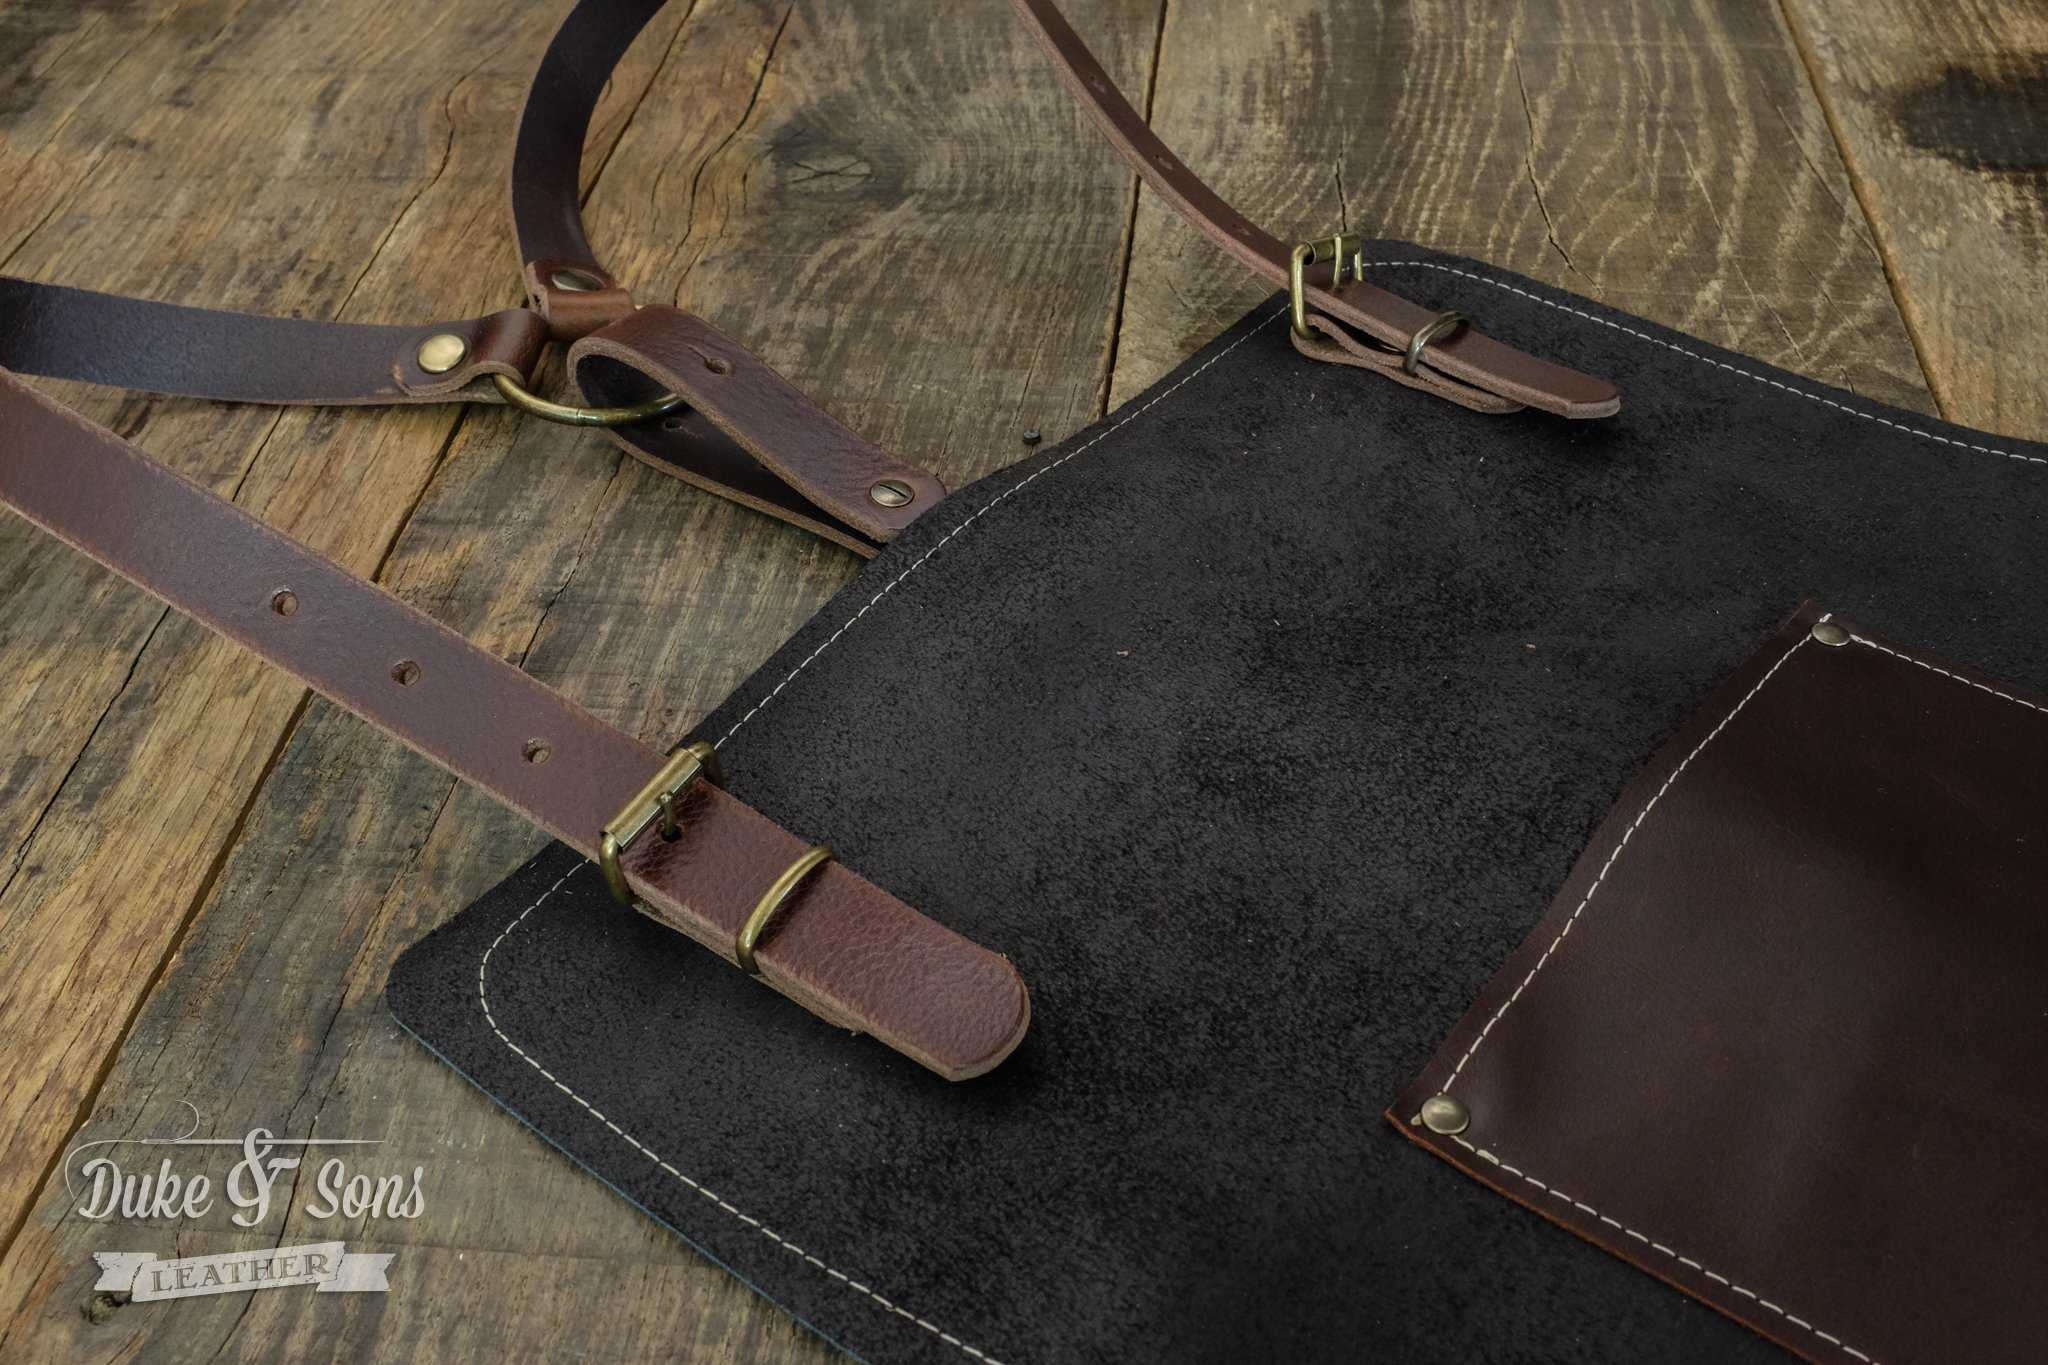 Barber apron, fully adjustable | Duke & Sons Leather